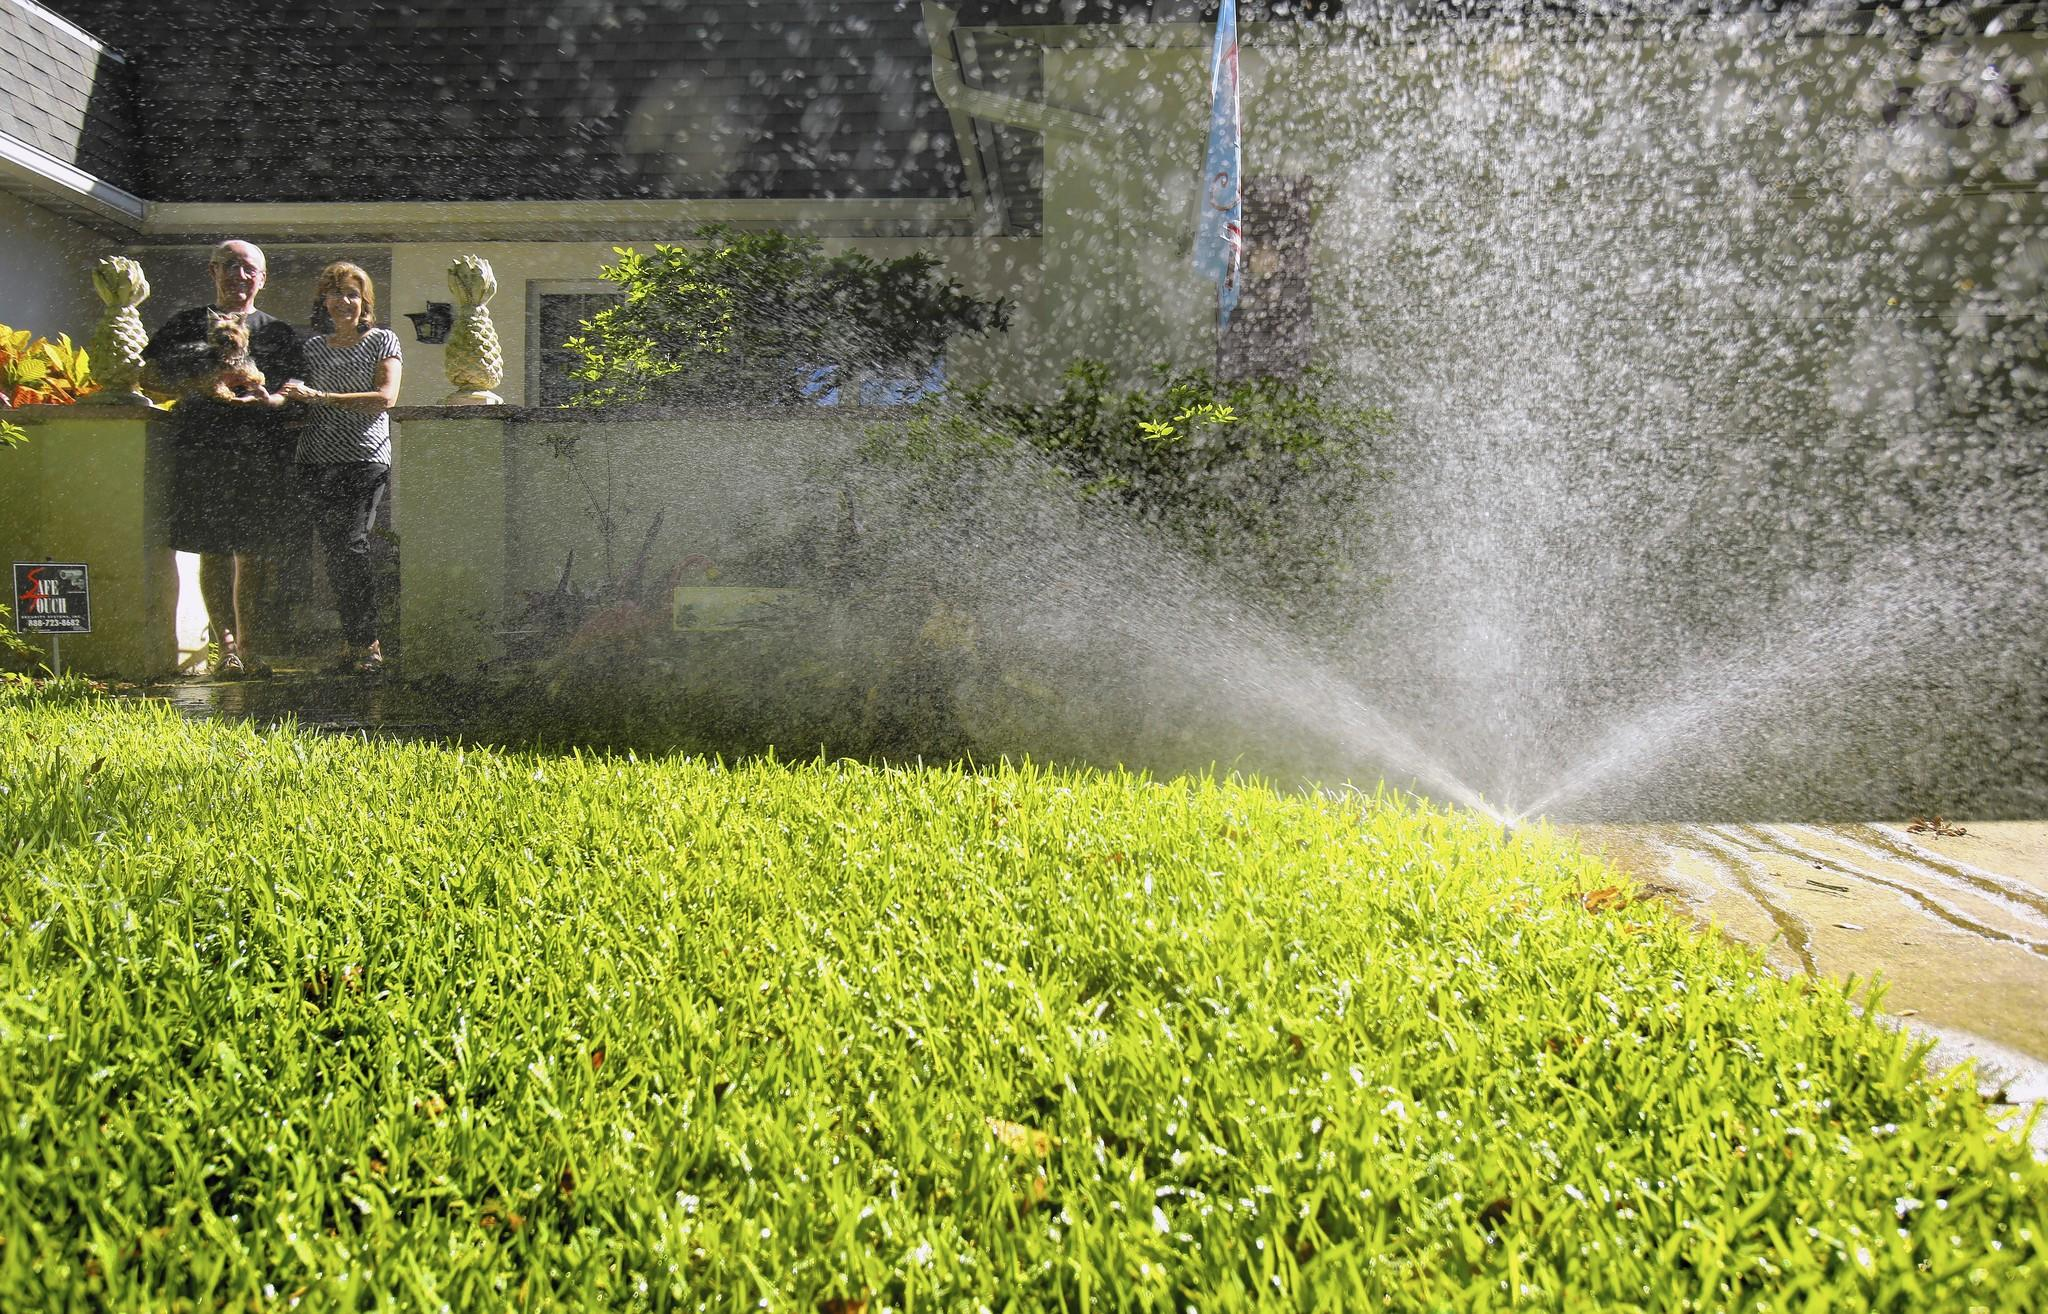 Gail and Don Wright have been using reclaimed water to irrigate their Altamonte Springs lawn since around 1990, when the system first became available to their neighborhood.